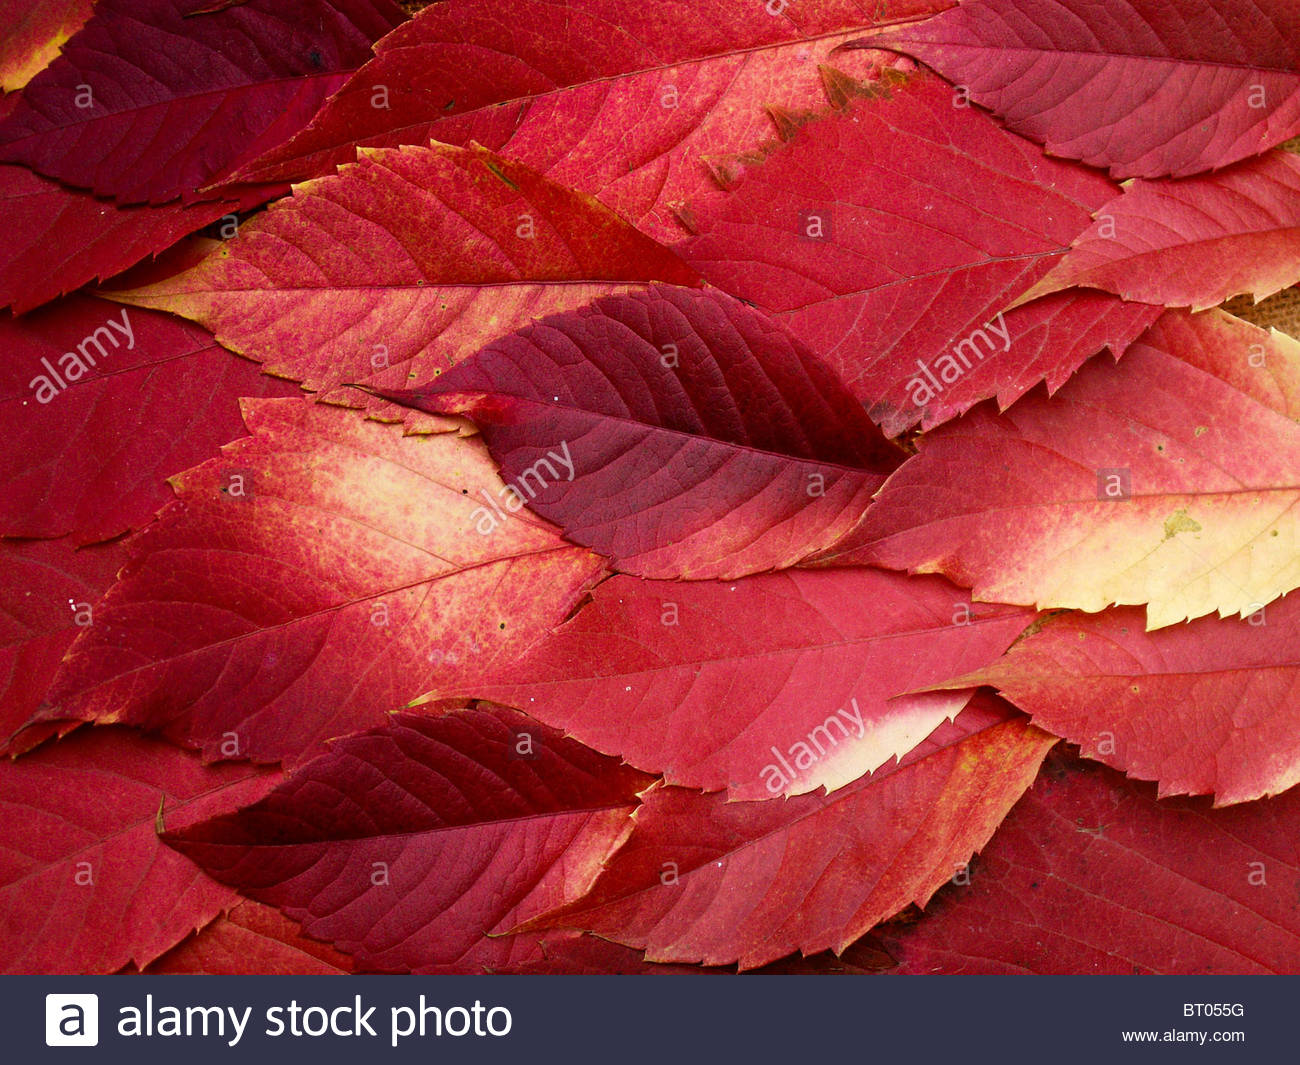 Fiery leaves (leaves of wild grapes in the natural colour) - Stock Image